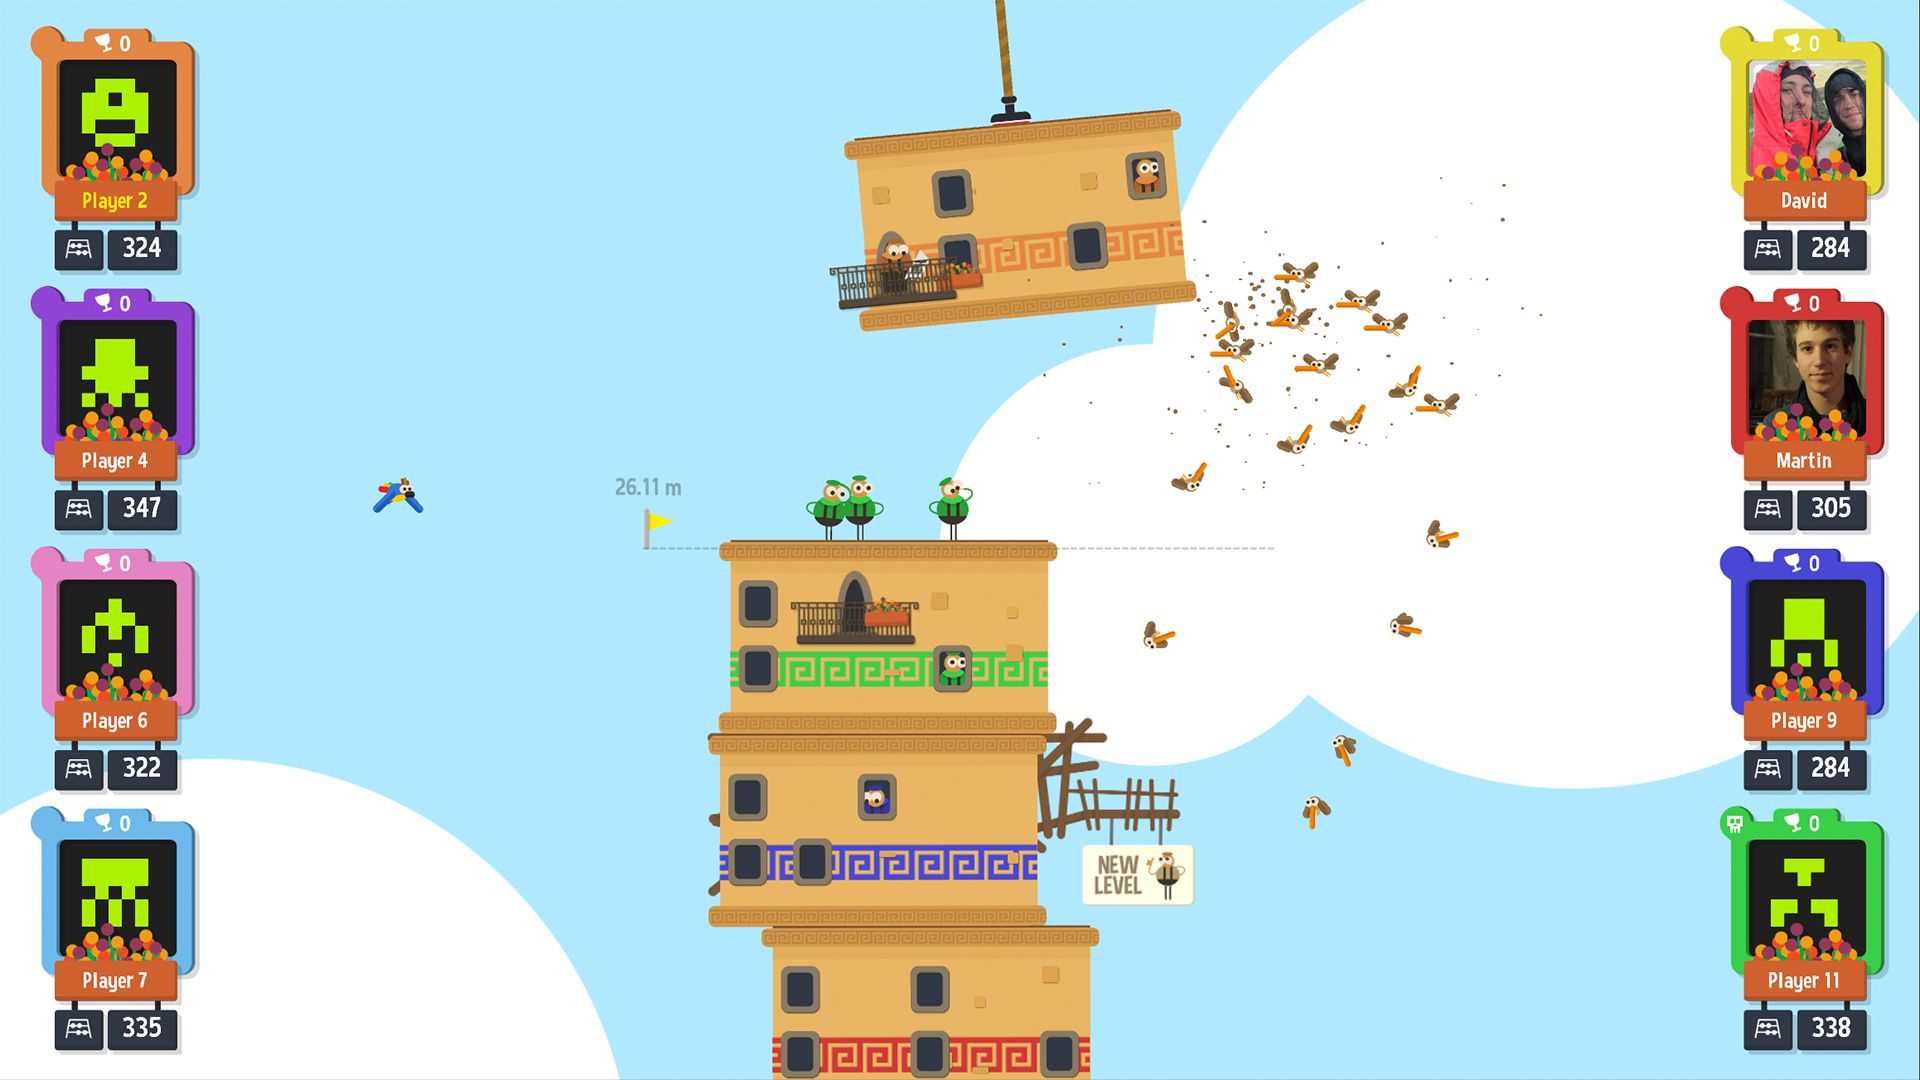 DNA Studios ports their multiplayer party game Tower of Babel to Switch